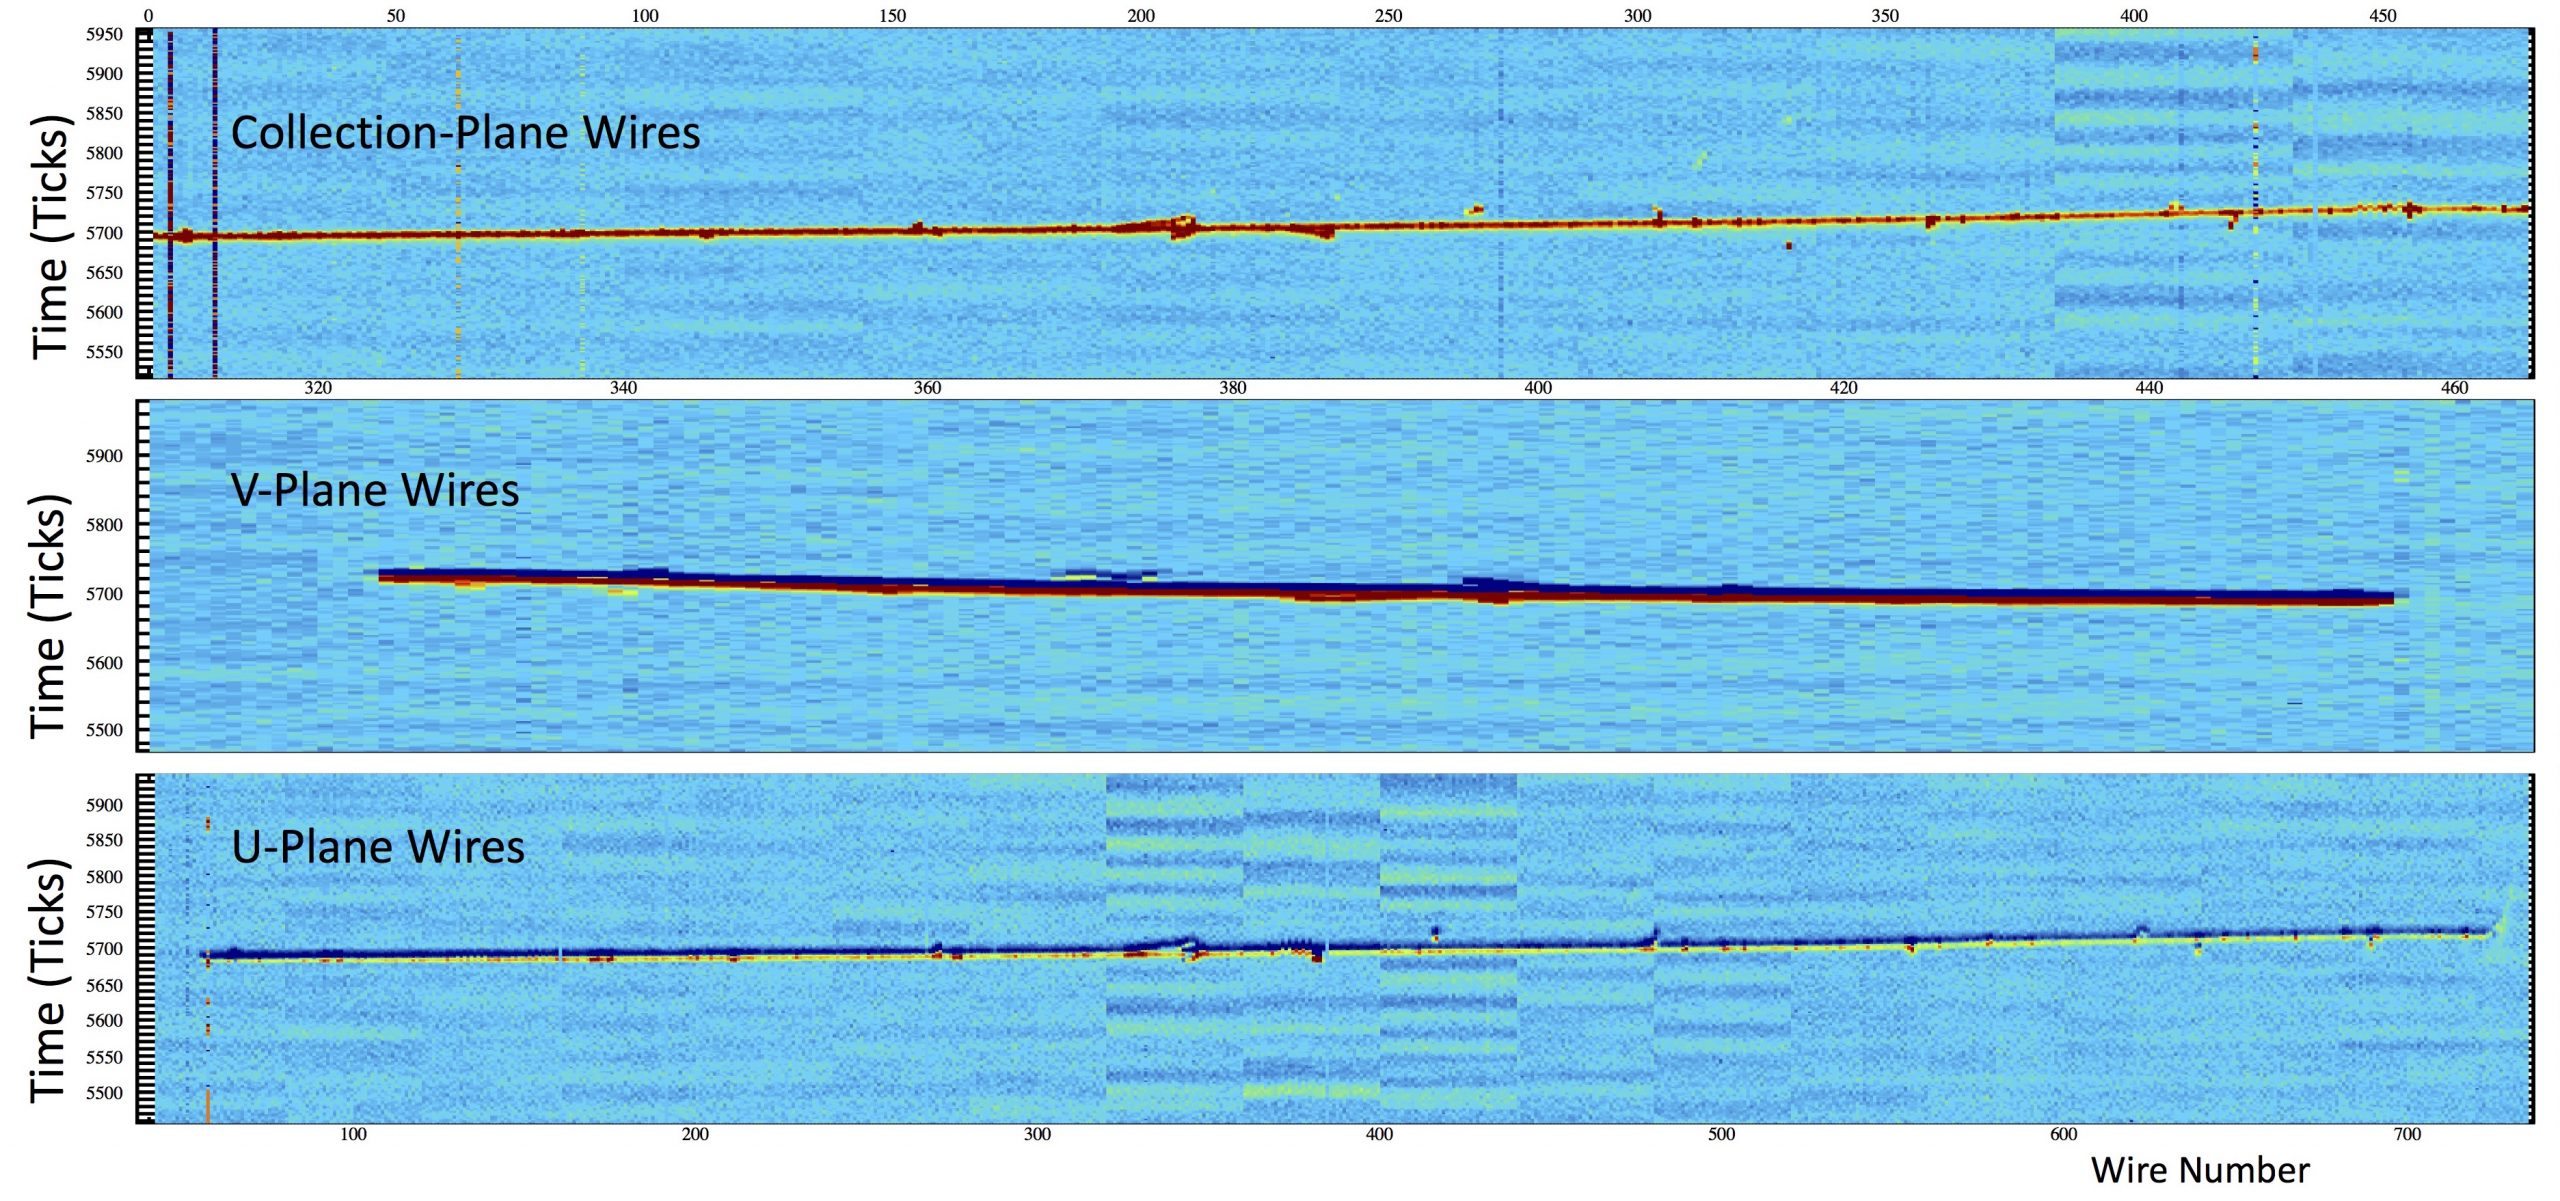 First cosmic muon particle tracks recorded by the ProtoDUNE detector at CERN